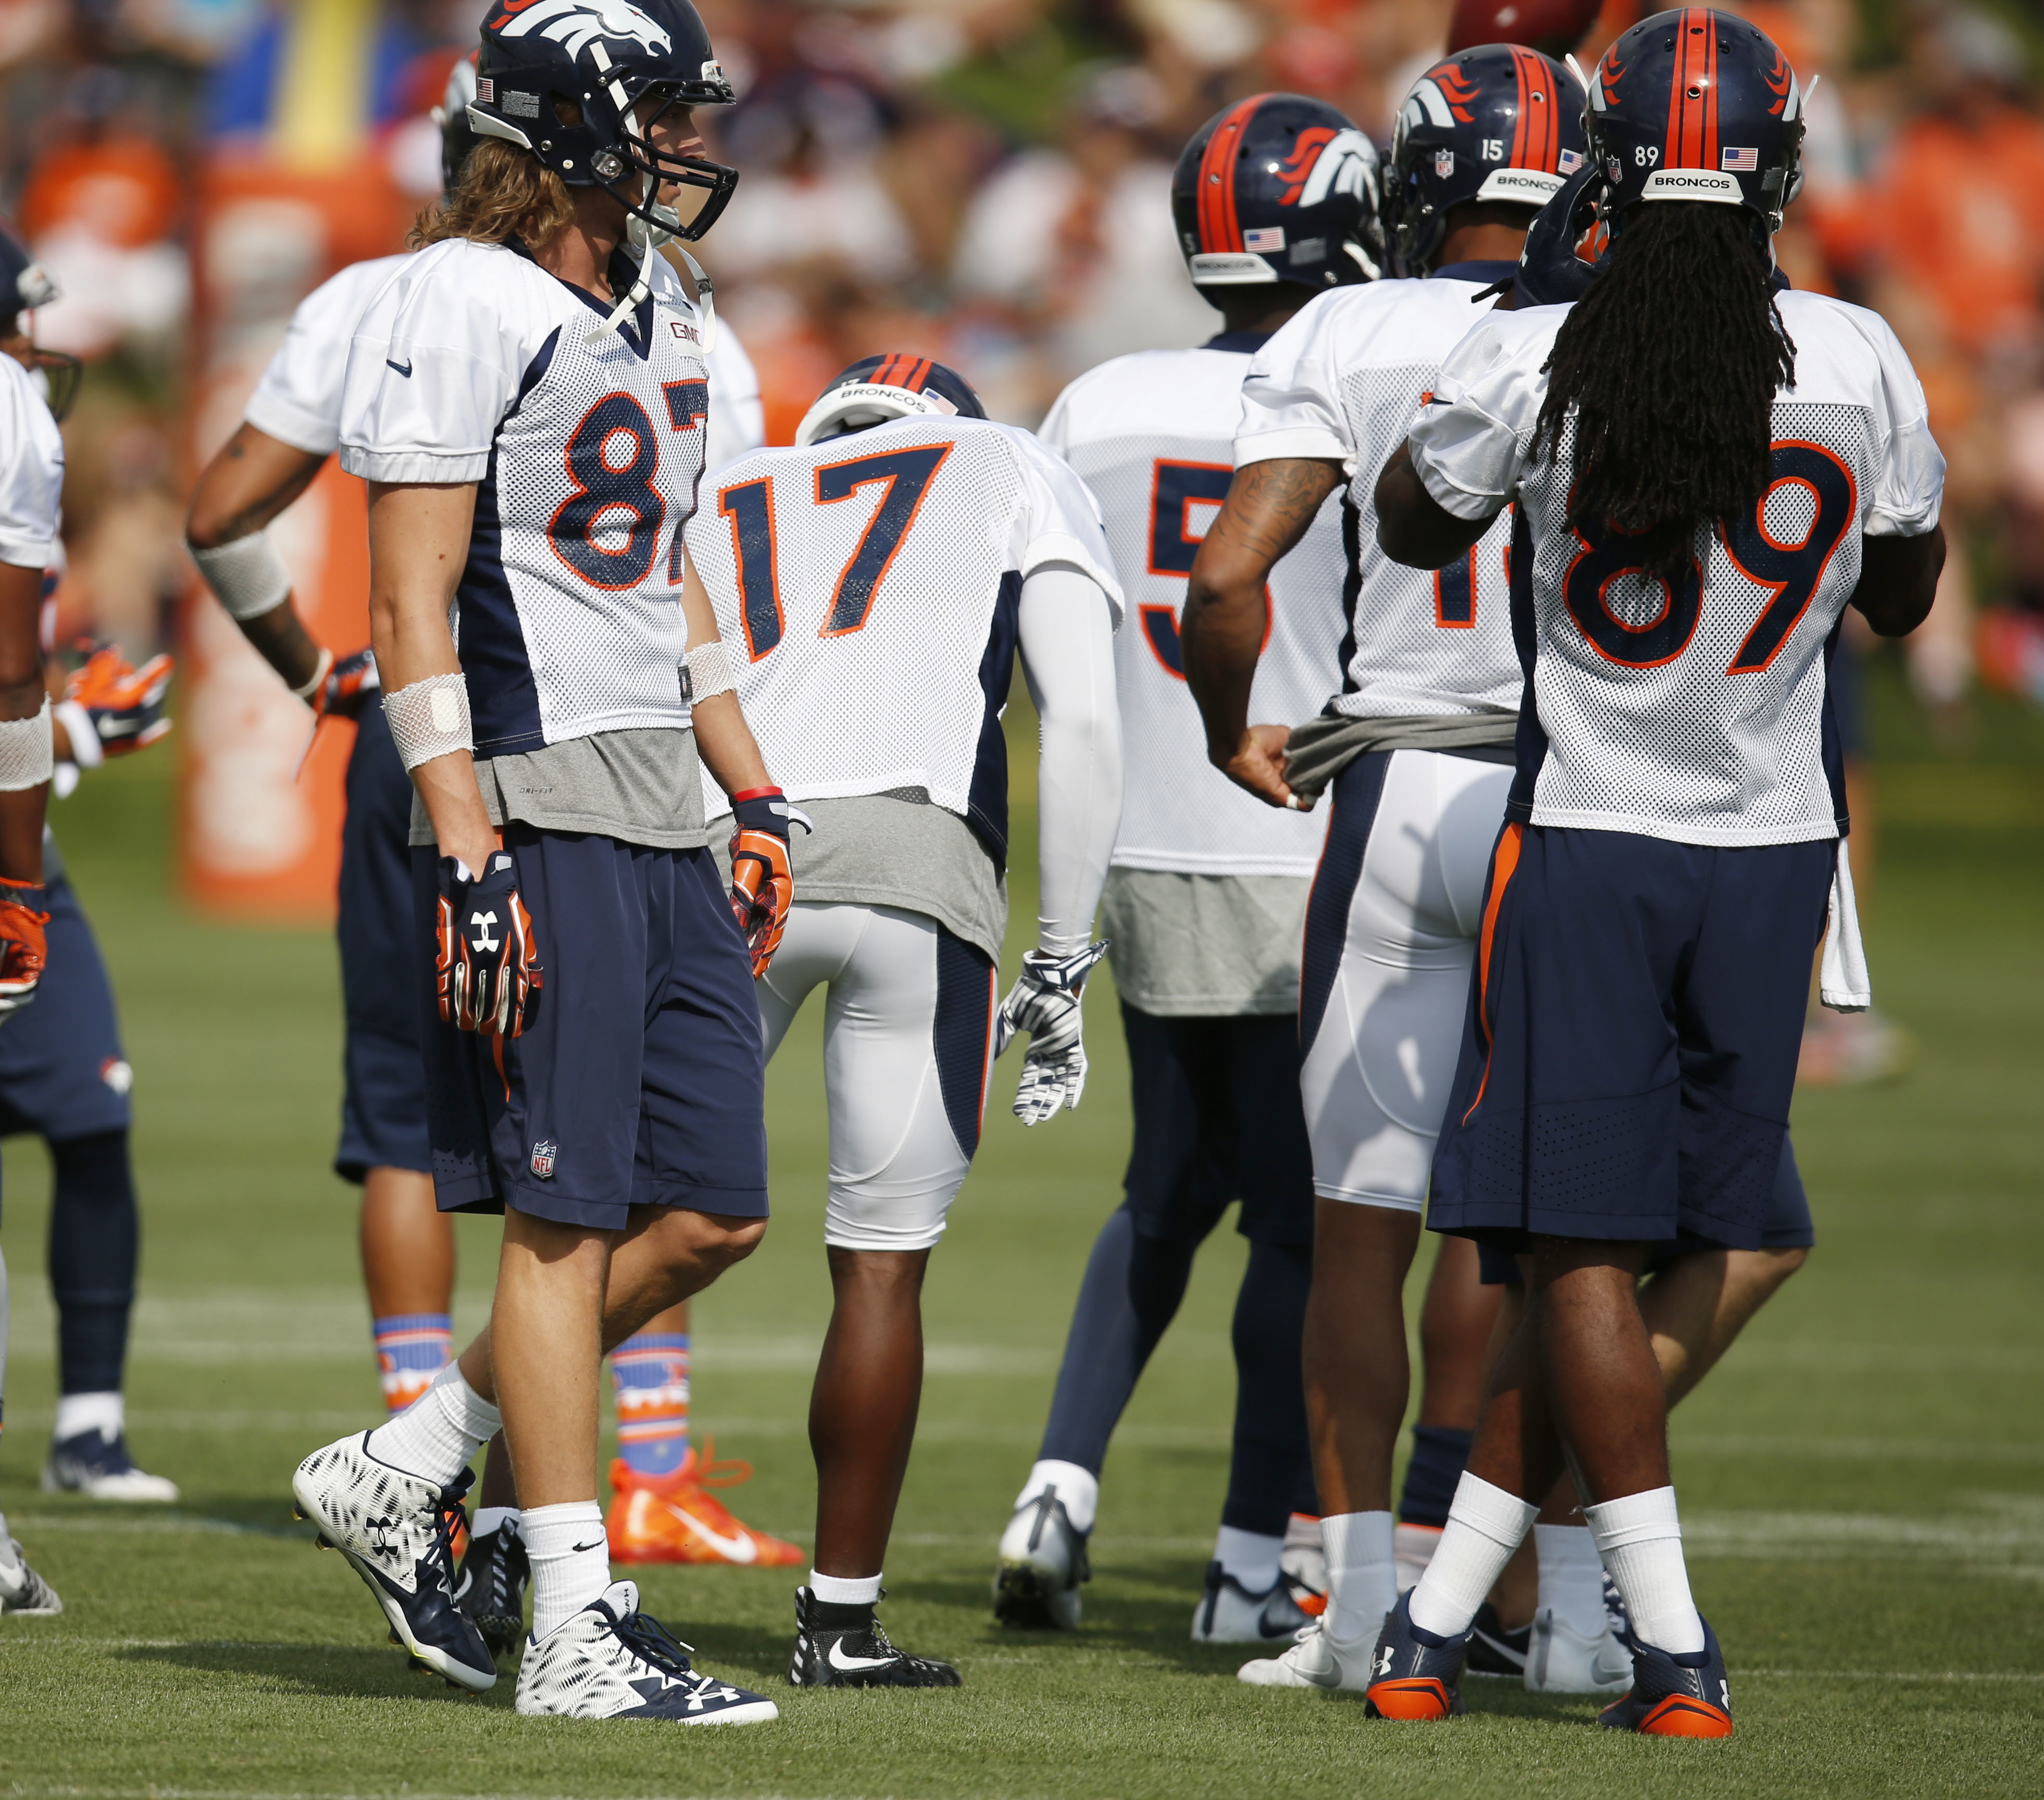 Denver Broncos wide receiver Jordan Taylor, left, joins teammates to take part in drills during the team's NFL football training camp Friday, July 29, 2016 in Englewood, Colo. (AP Photo/David Zalubowski)